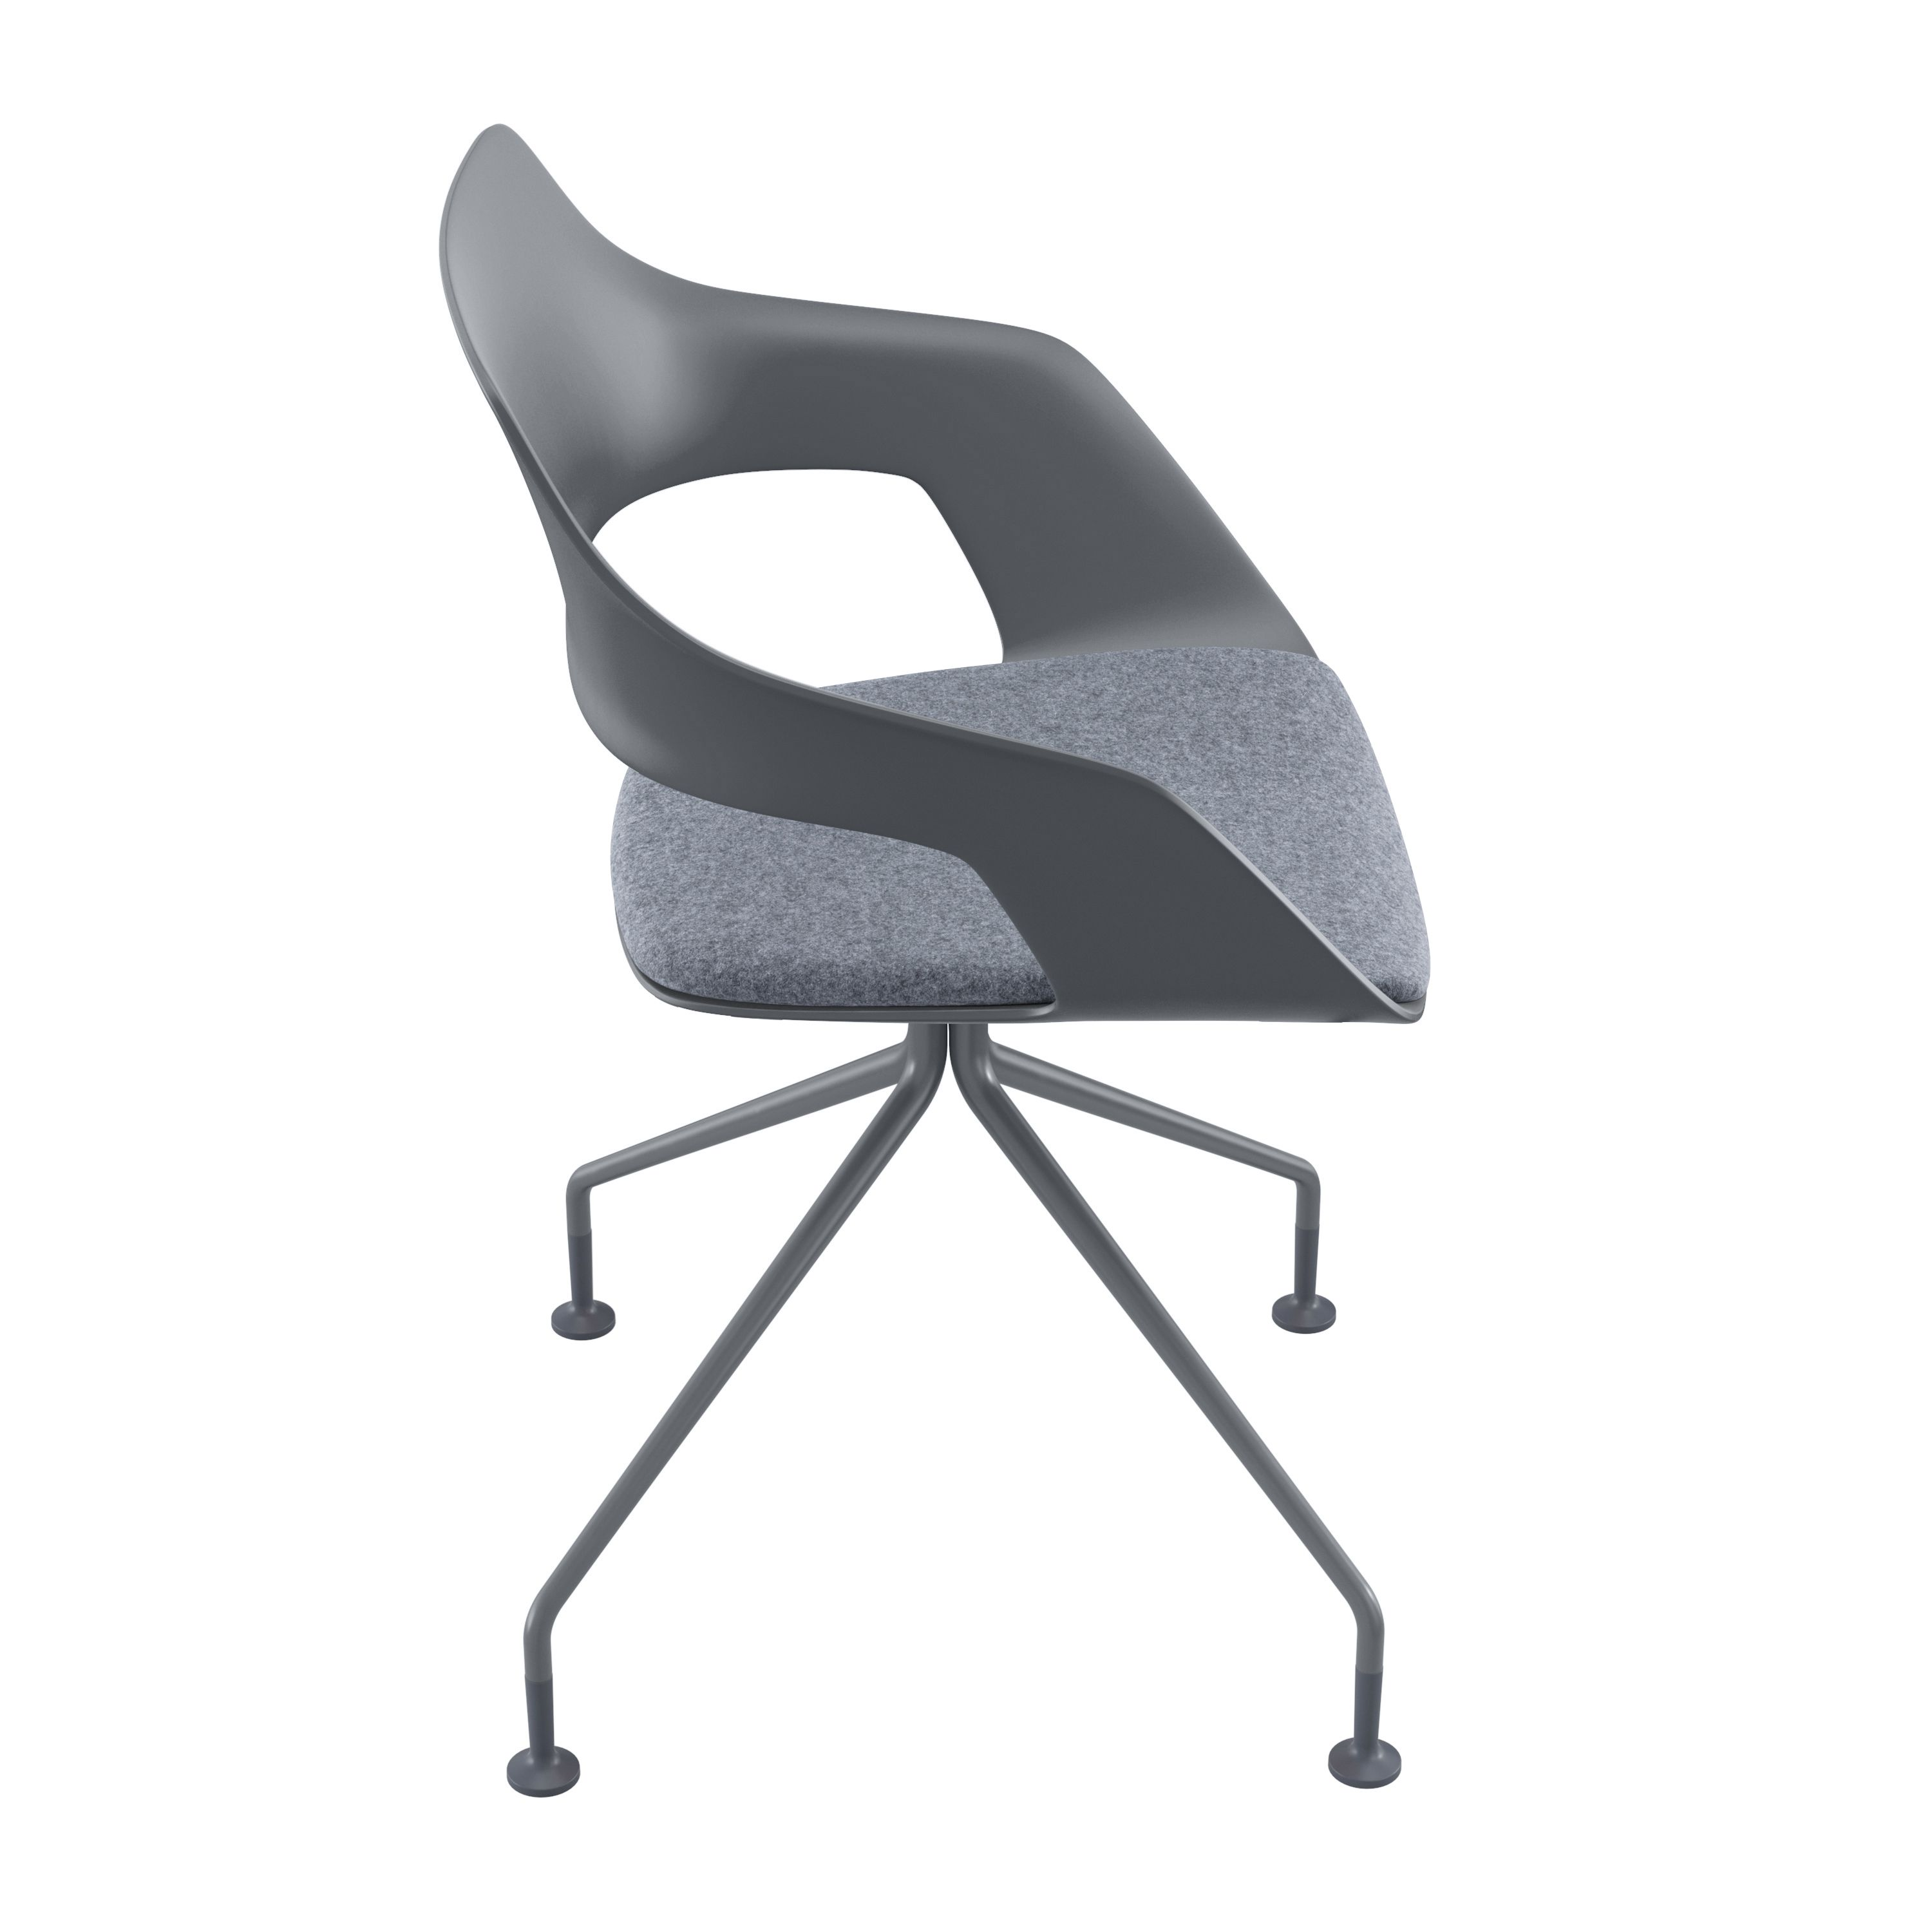 Occo Chair | star base swivel mounted | Desing by jehs+laub ...